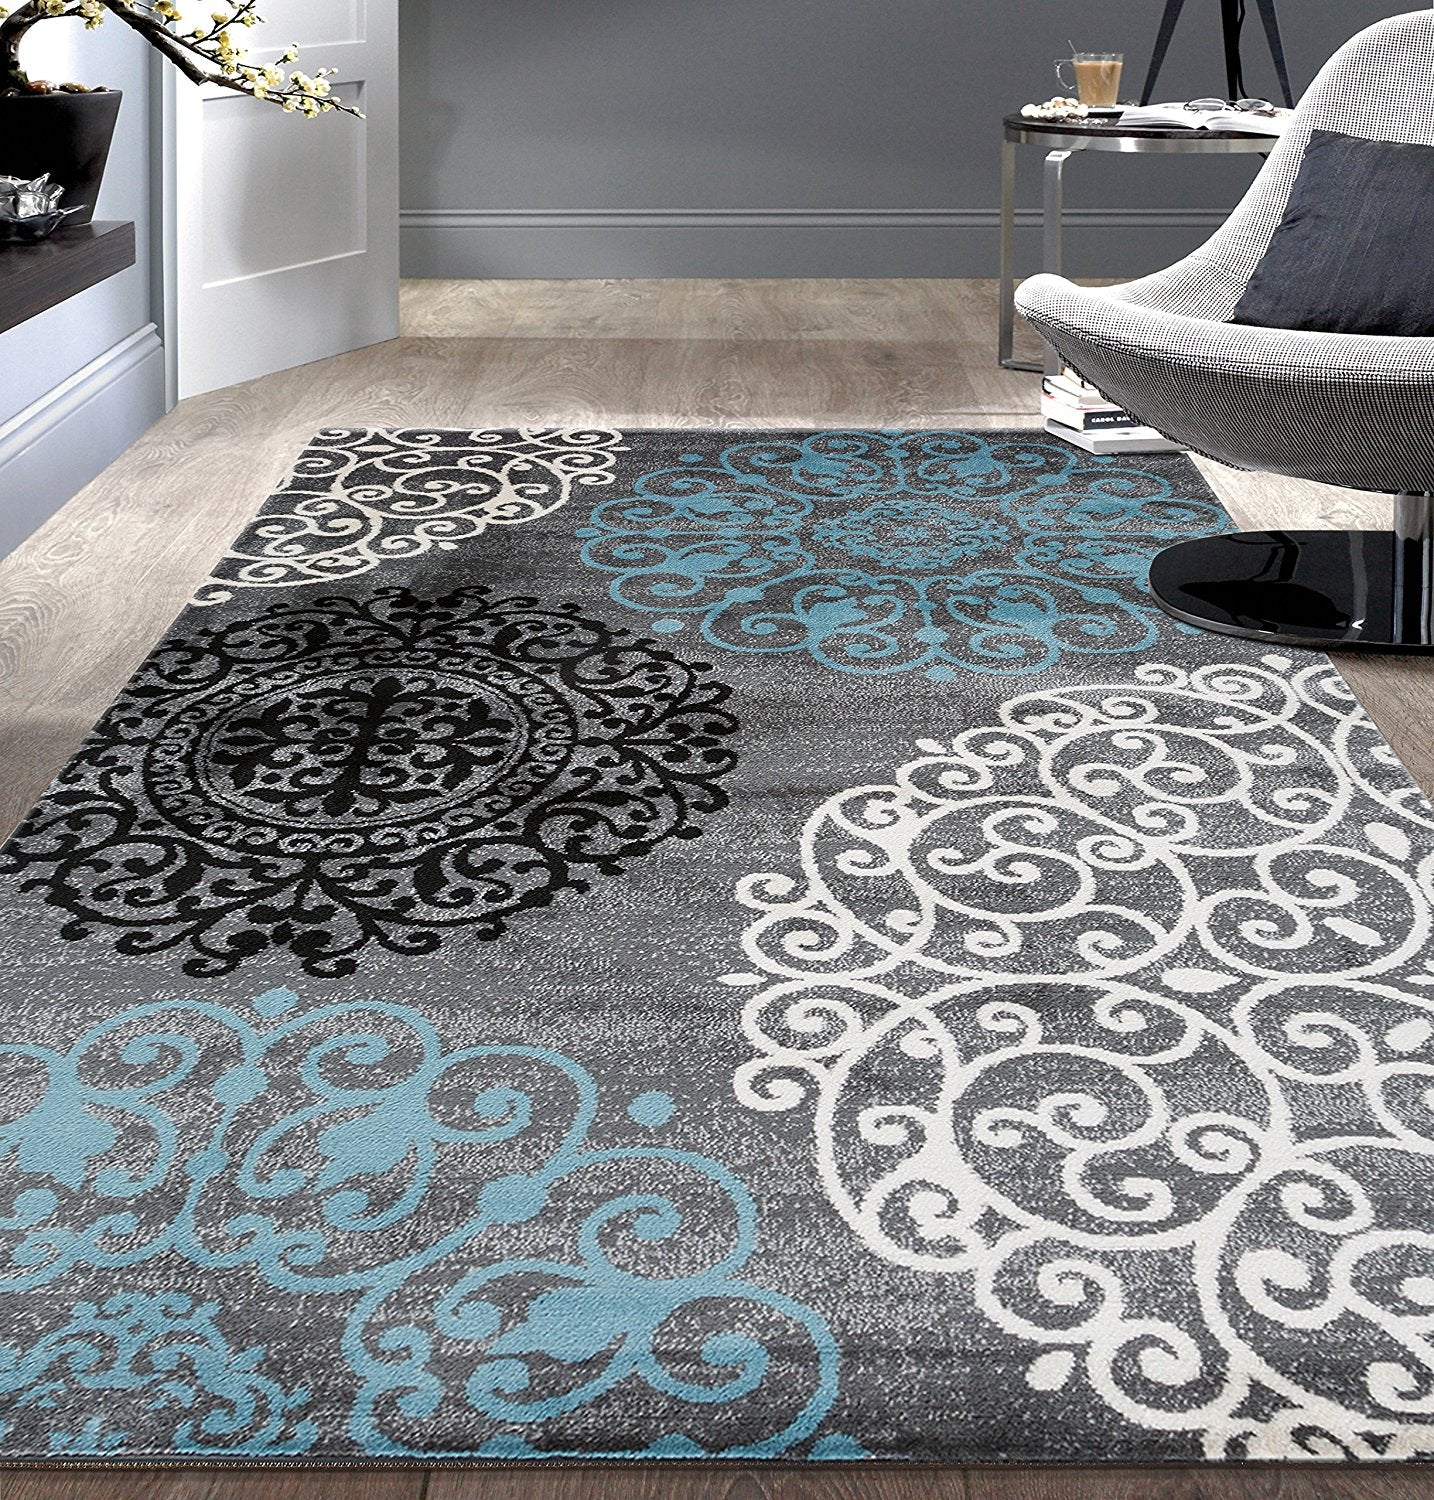 Gray Blue Large Floral Area Rug Modern Rugs And Decor